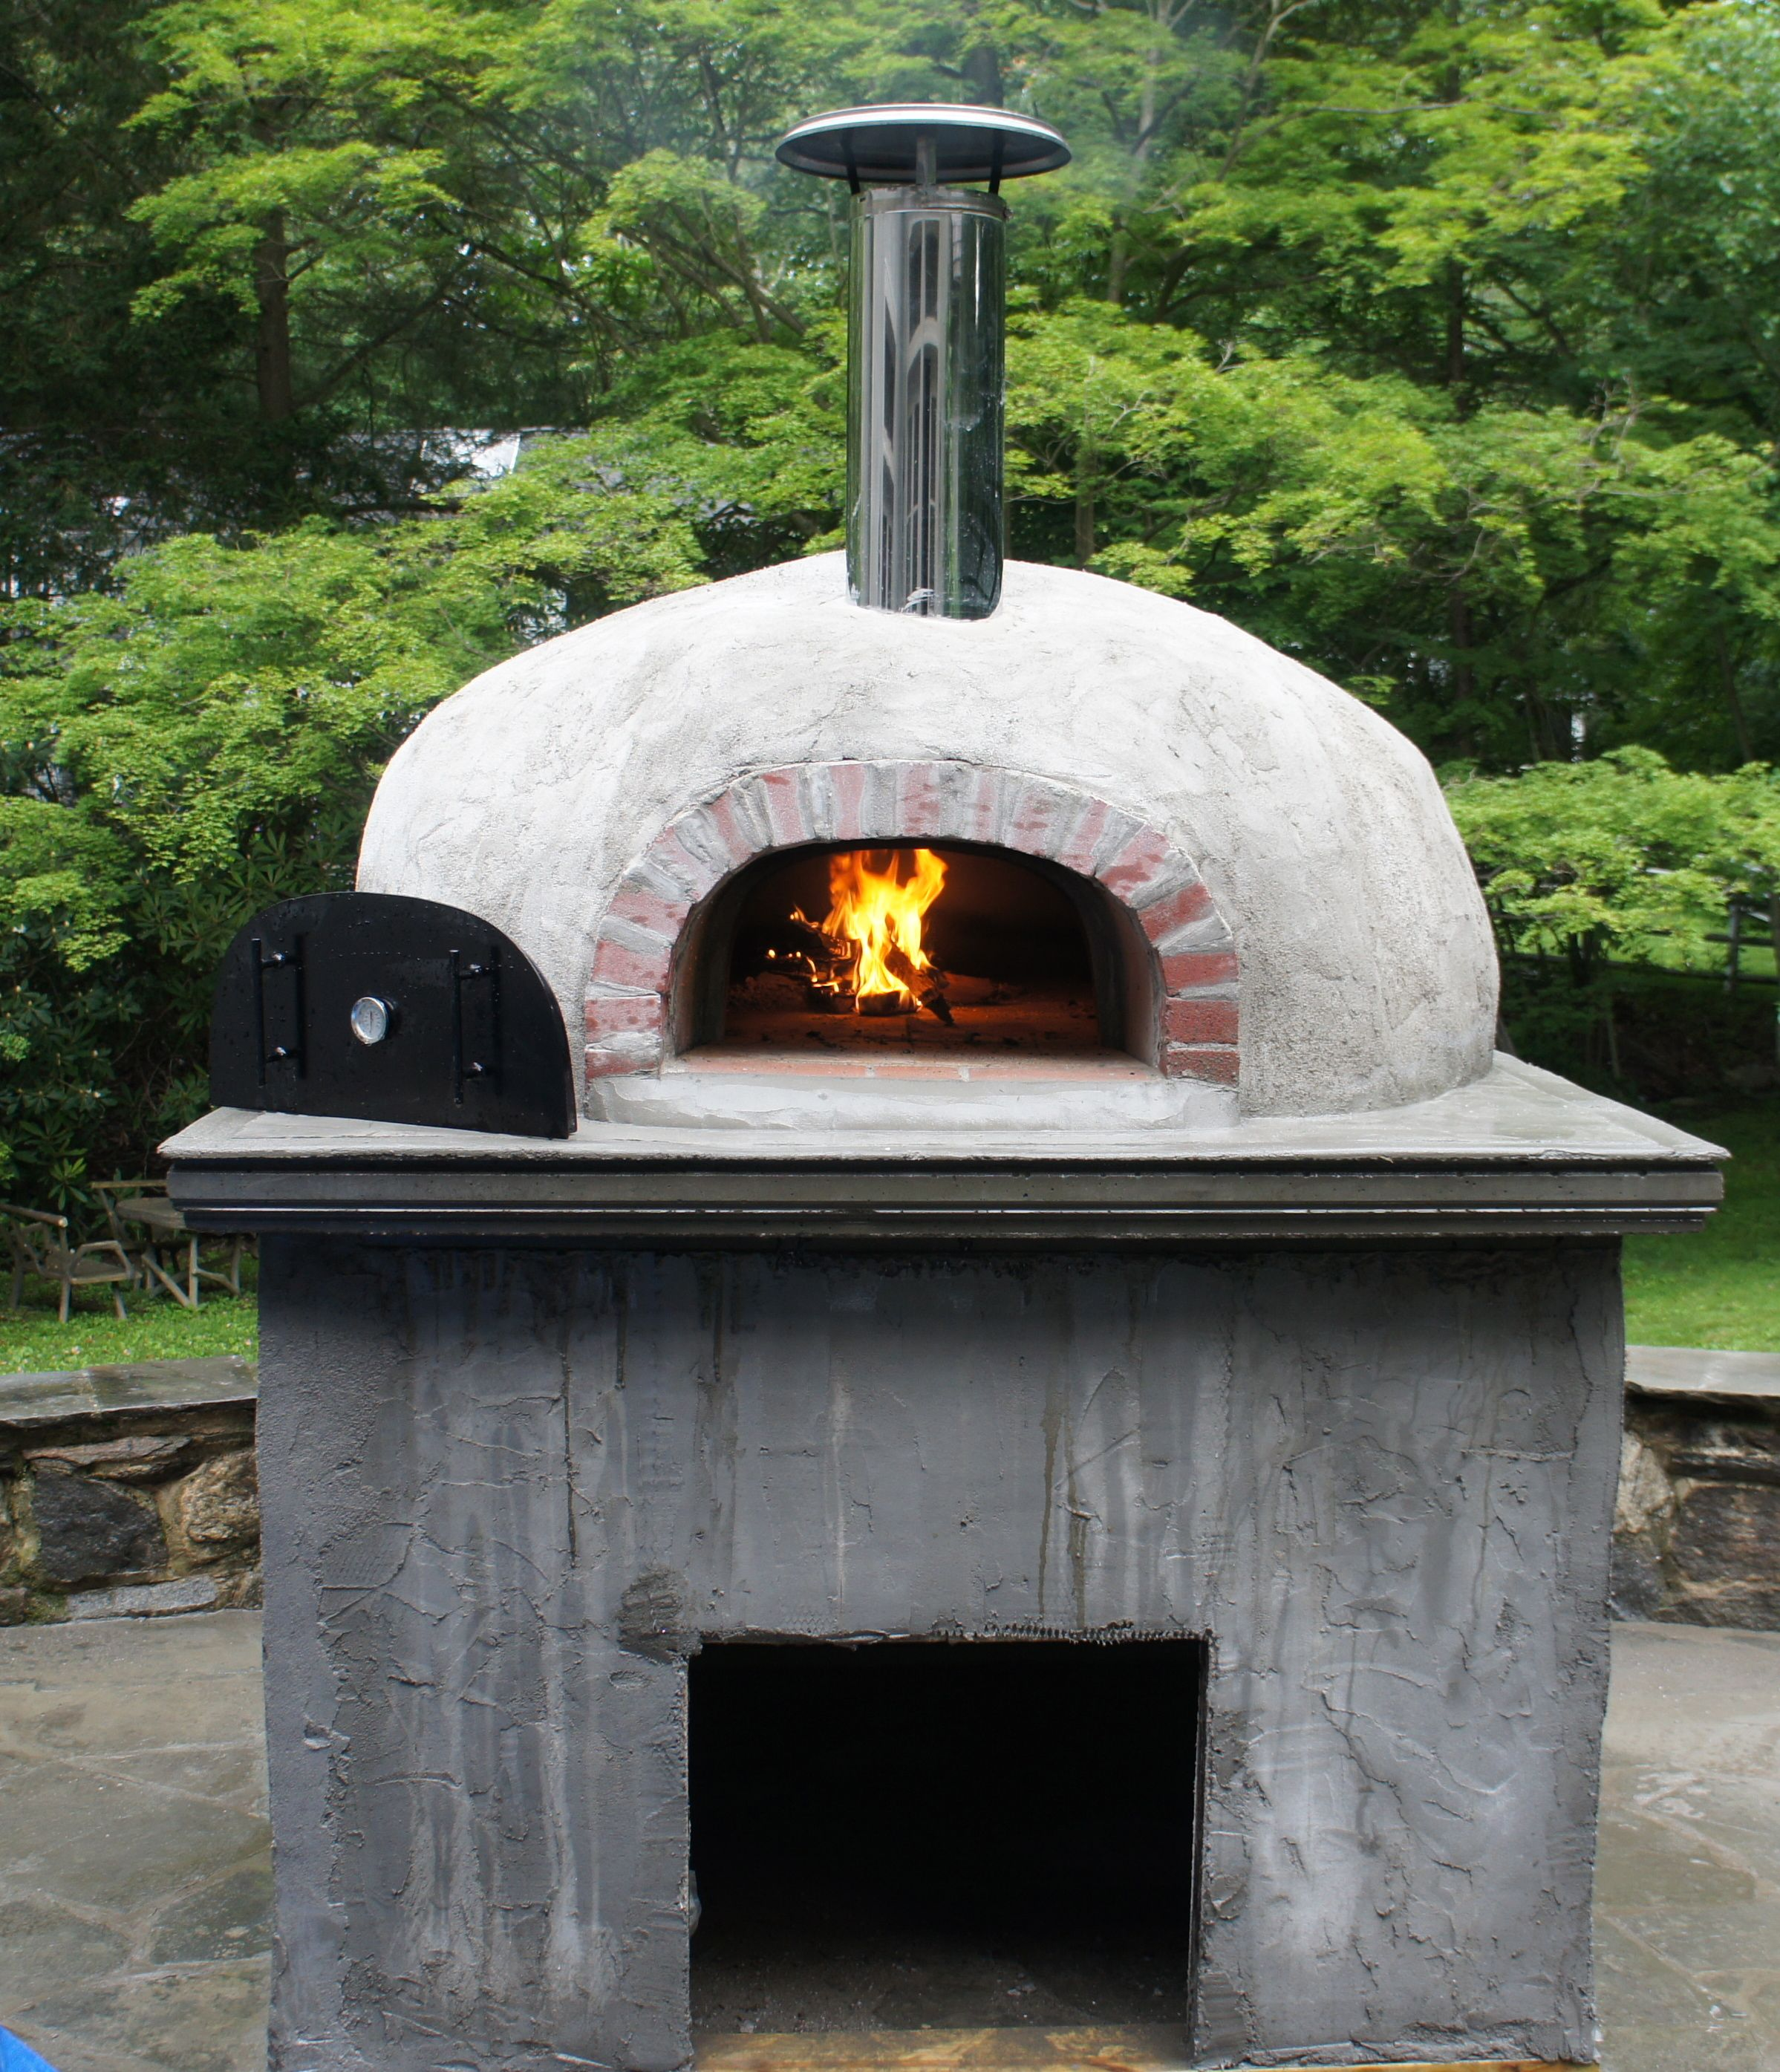 My Back Yard Wood Burning Pizza Oven (With images) | Wood ...